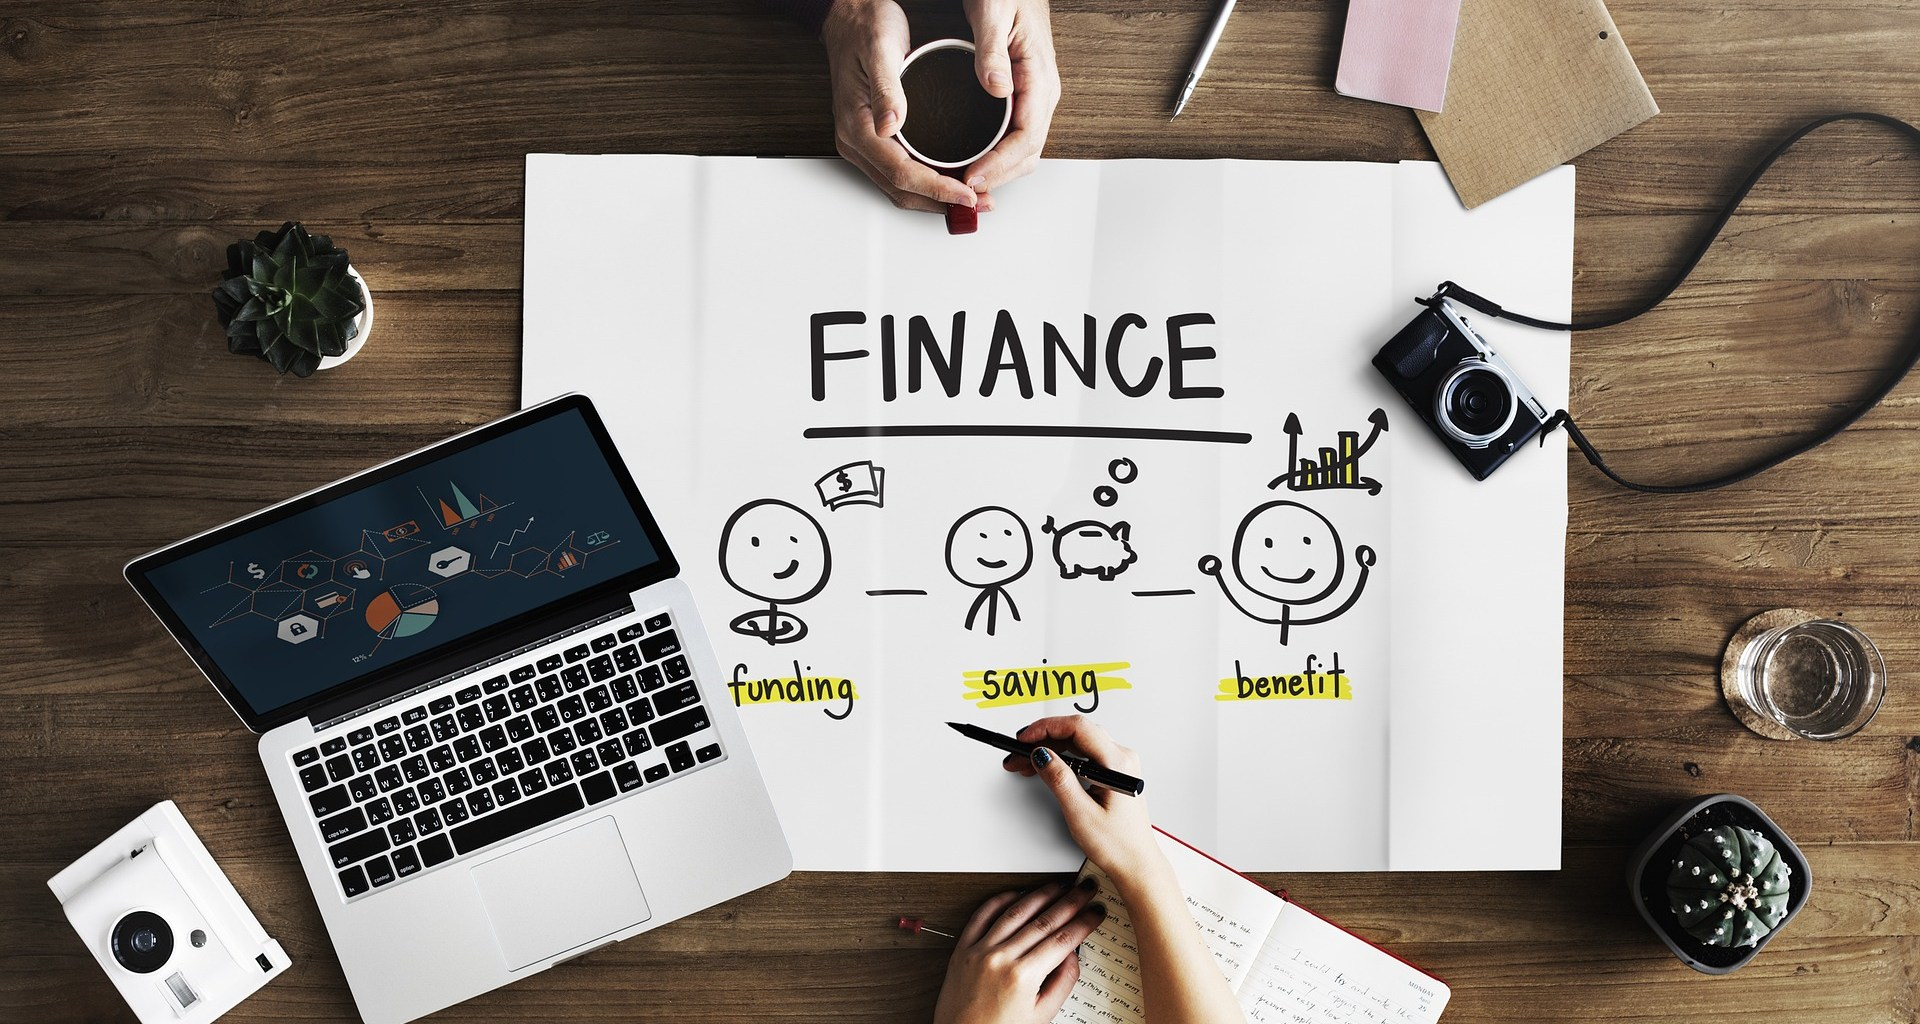 5 Finance Steps to Help You Get Your Life Together 1